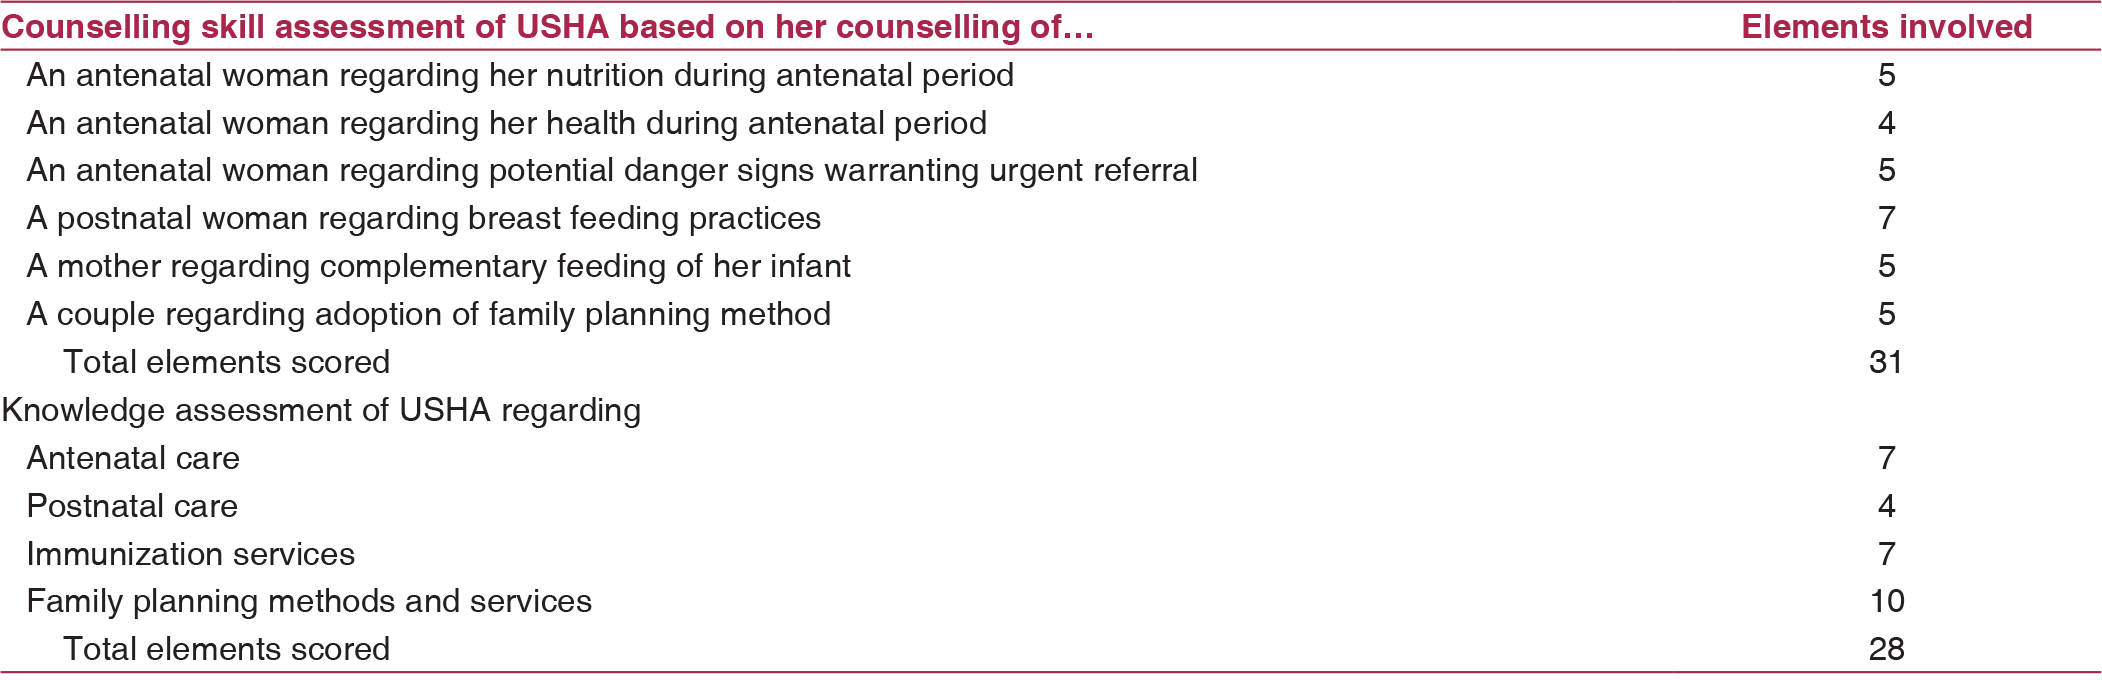 Table 1: Scoring elements used for assessment of counseling skills and knowledge of USHA